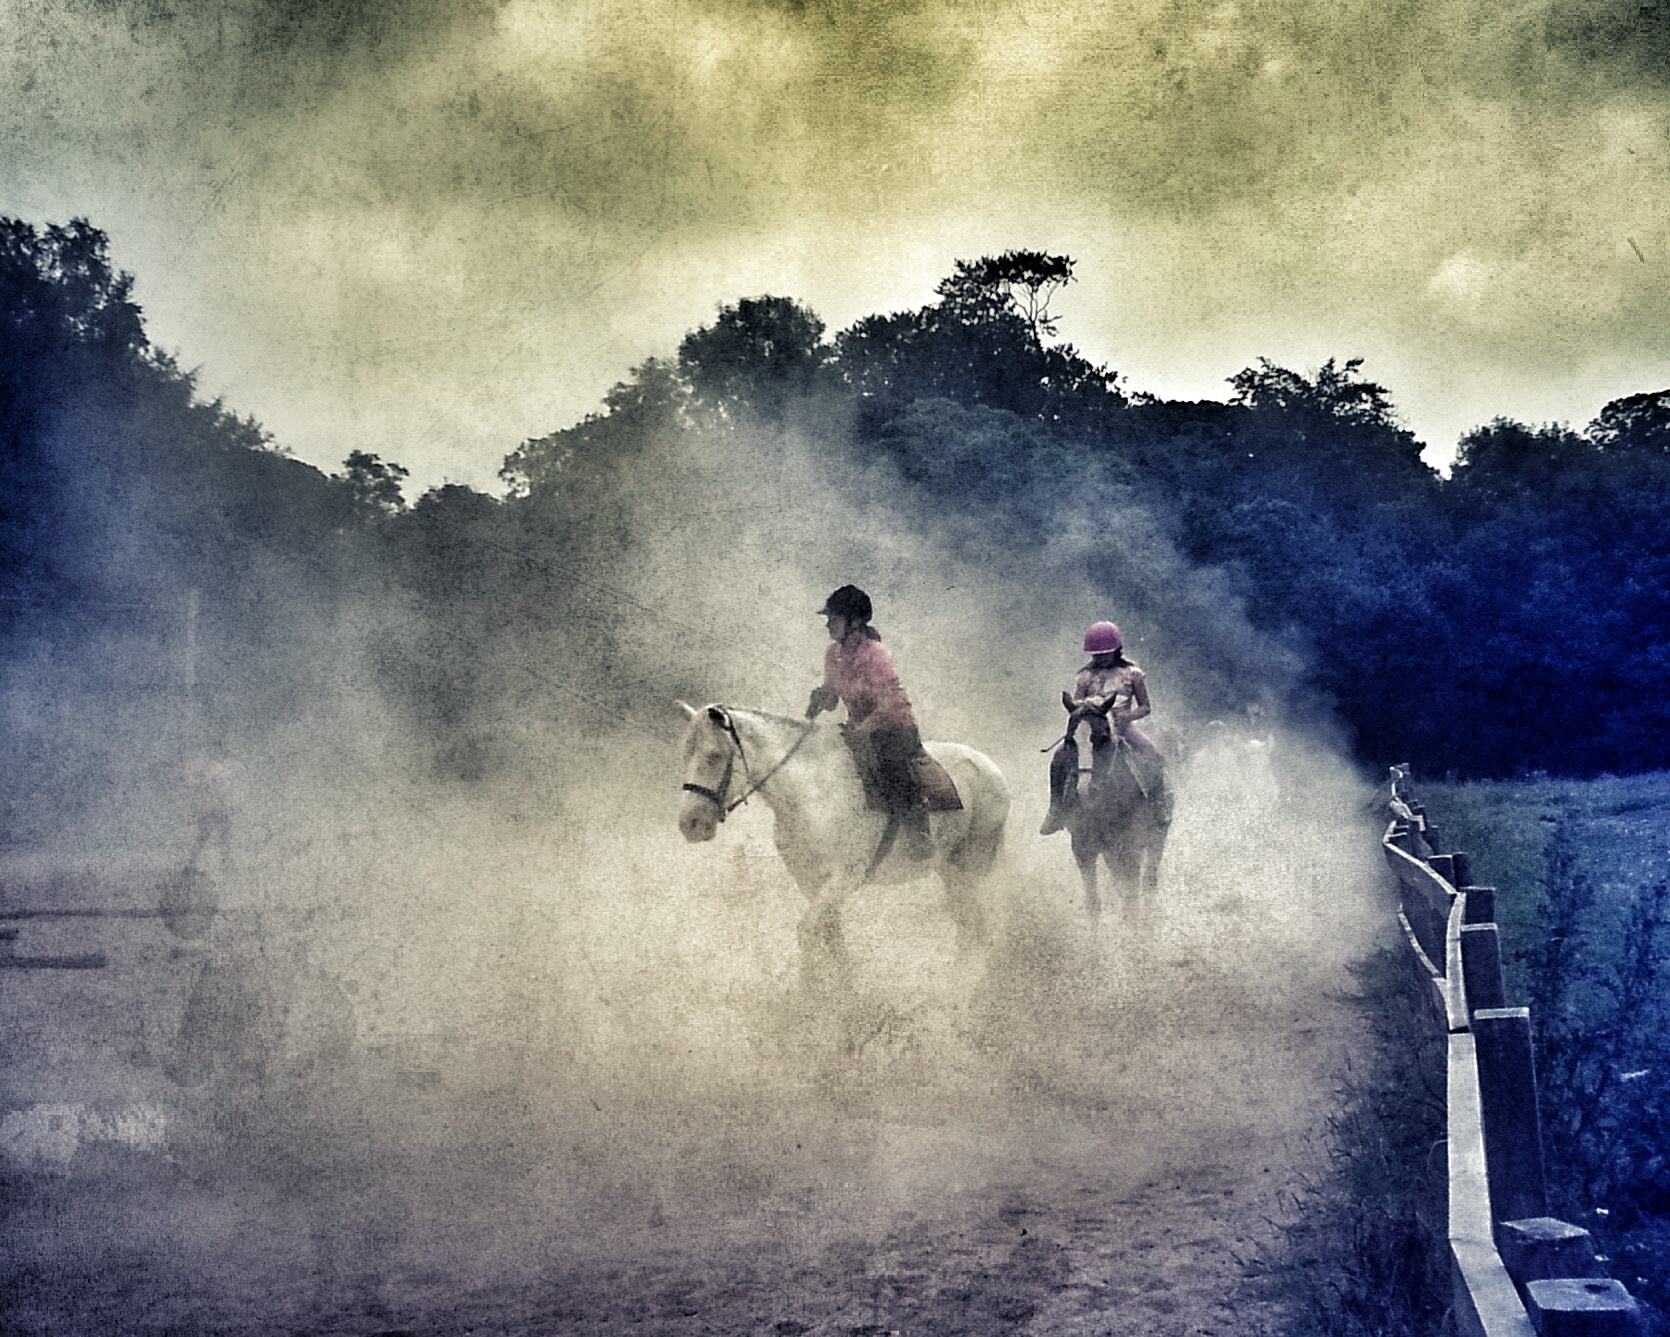 Photograph Horse riding through the dust by Taz Wake on 500px